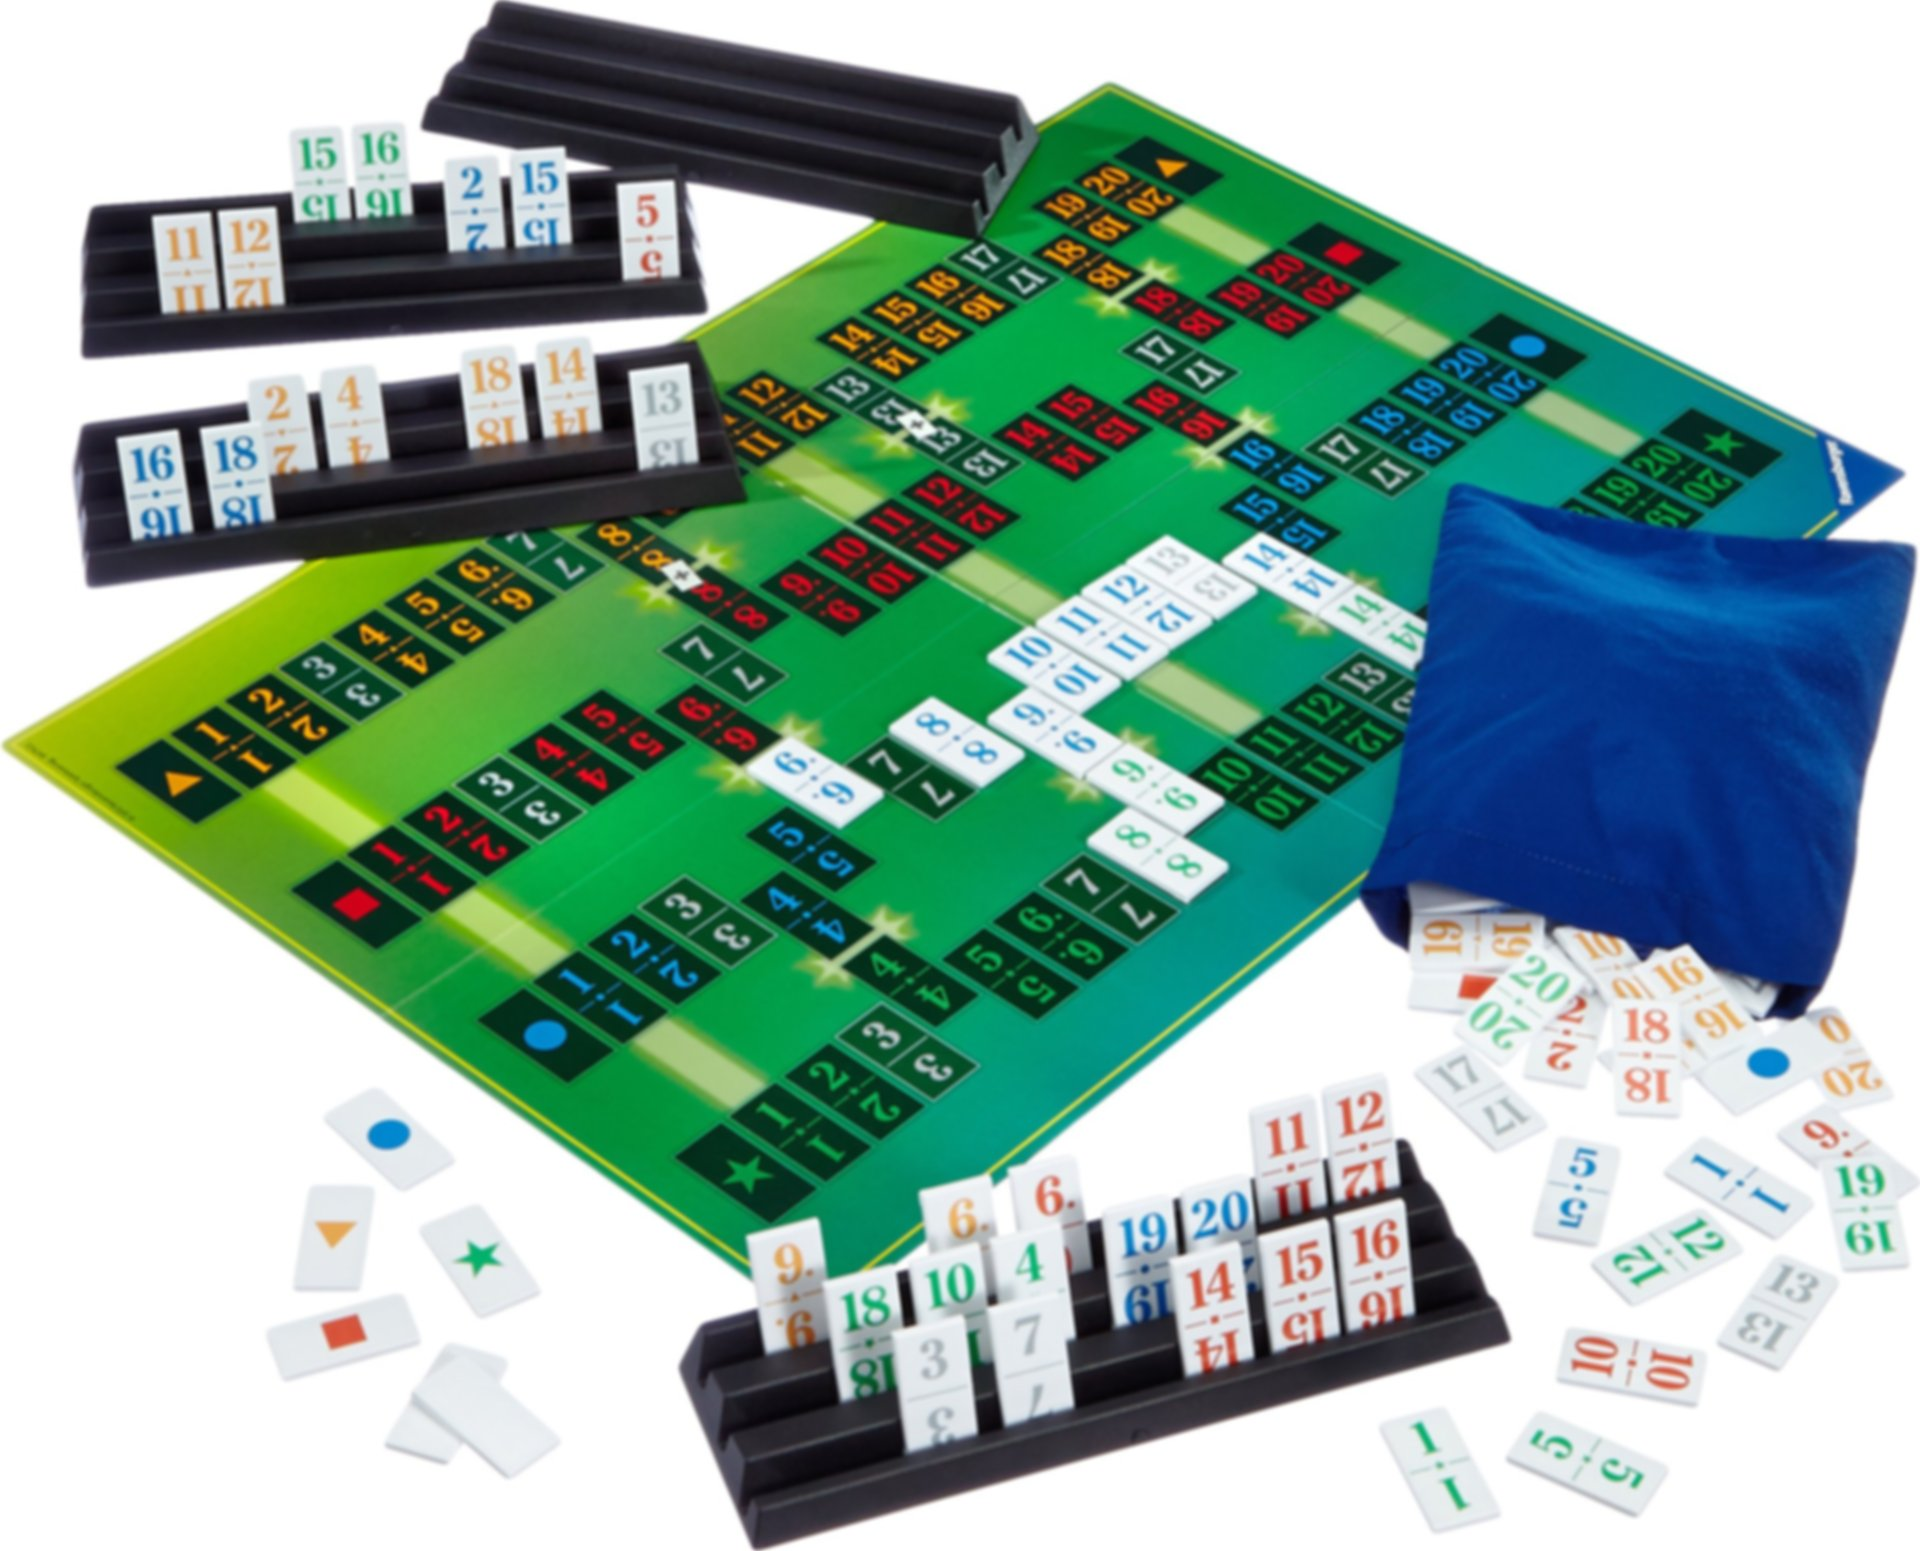 Start 11! The Board Game components